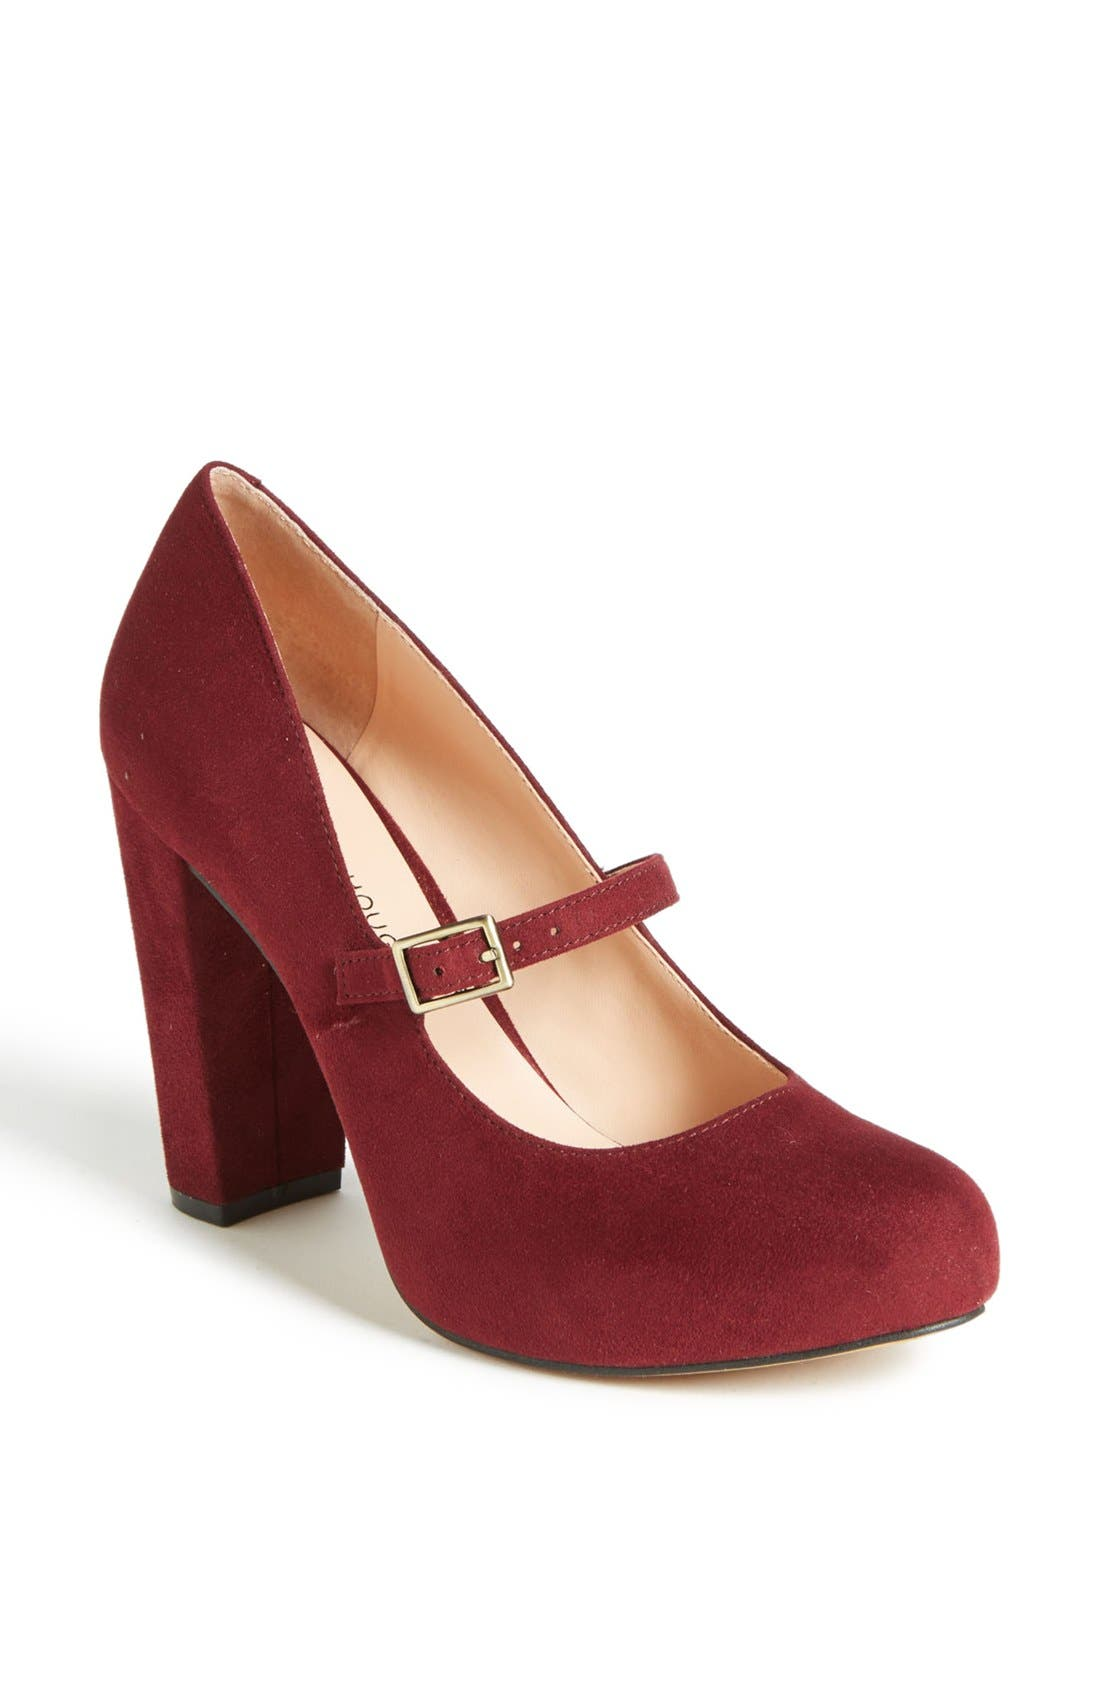 Alternate Image 1 Selected - Julianne Hough for Sole Society 'Whitney' Pump